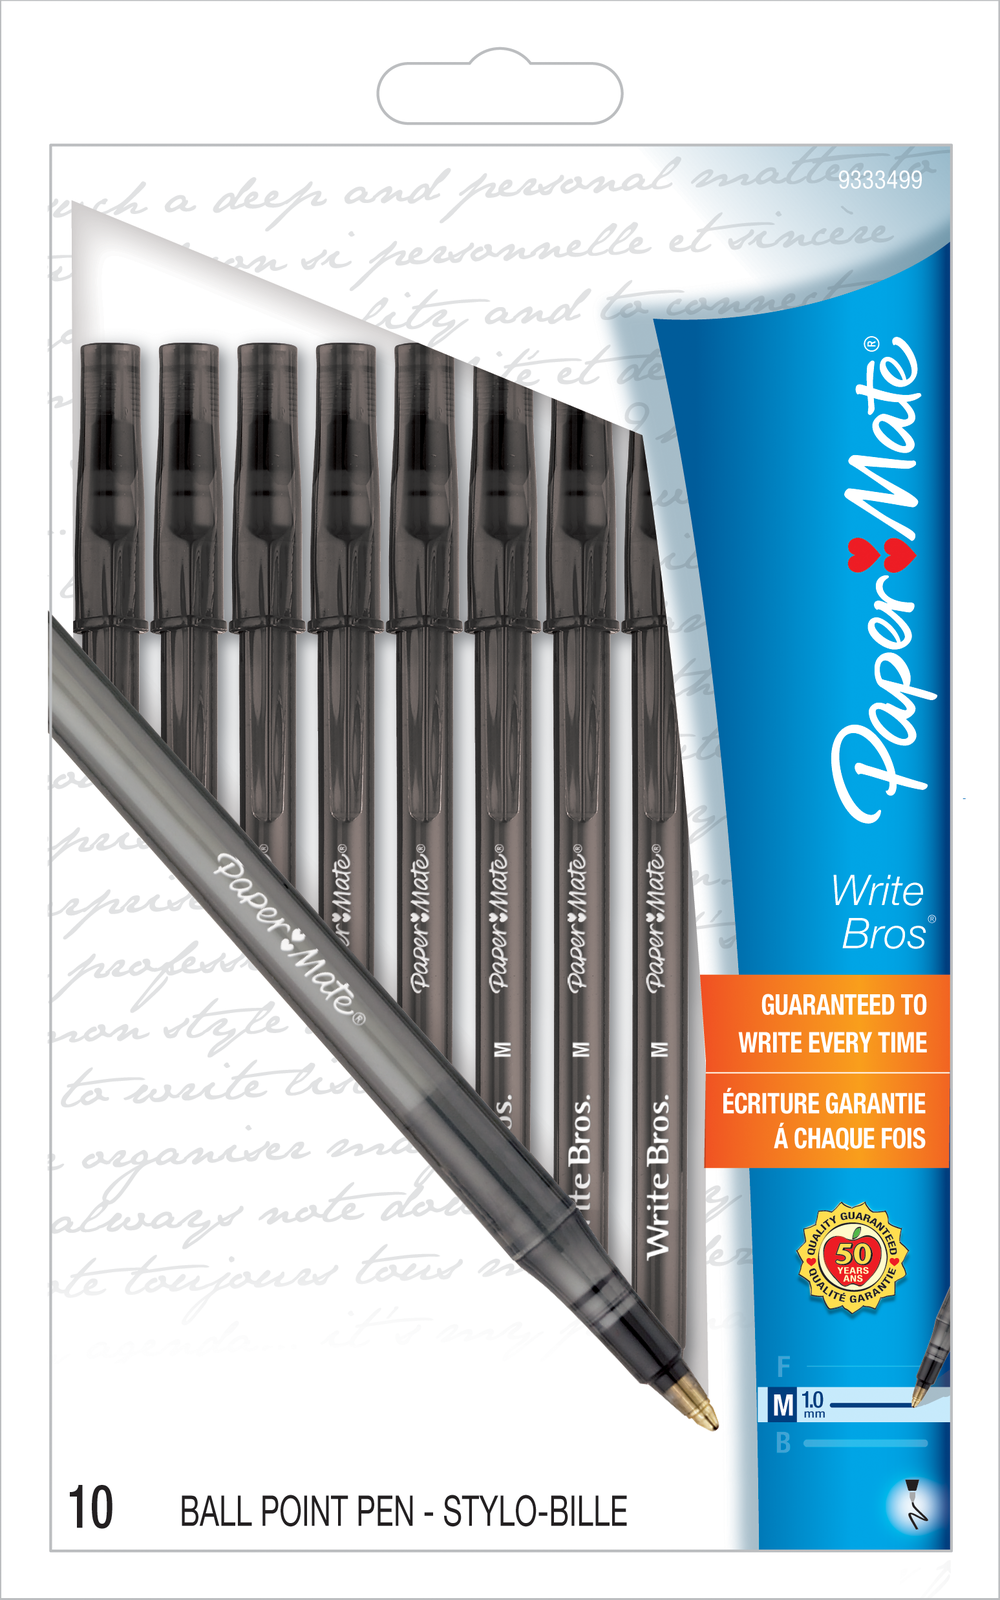 Paper Mate Write Brothers Ballpoint Pen Black 1.0mm BP 10 Pk